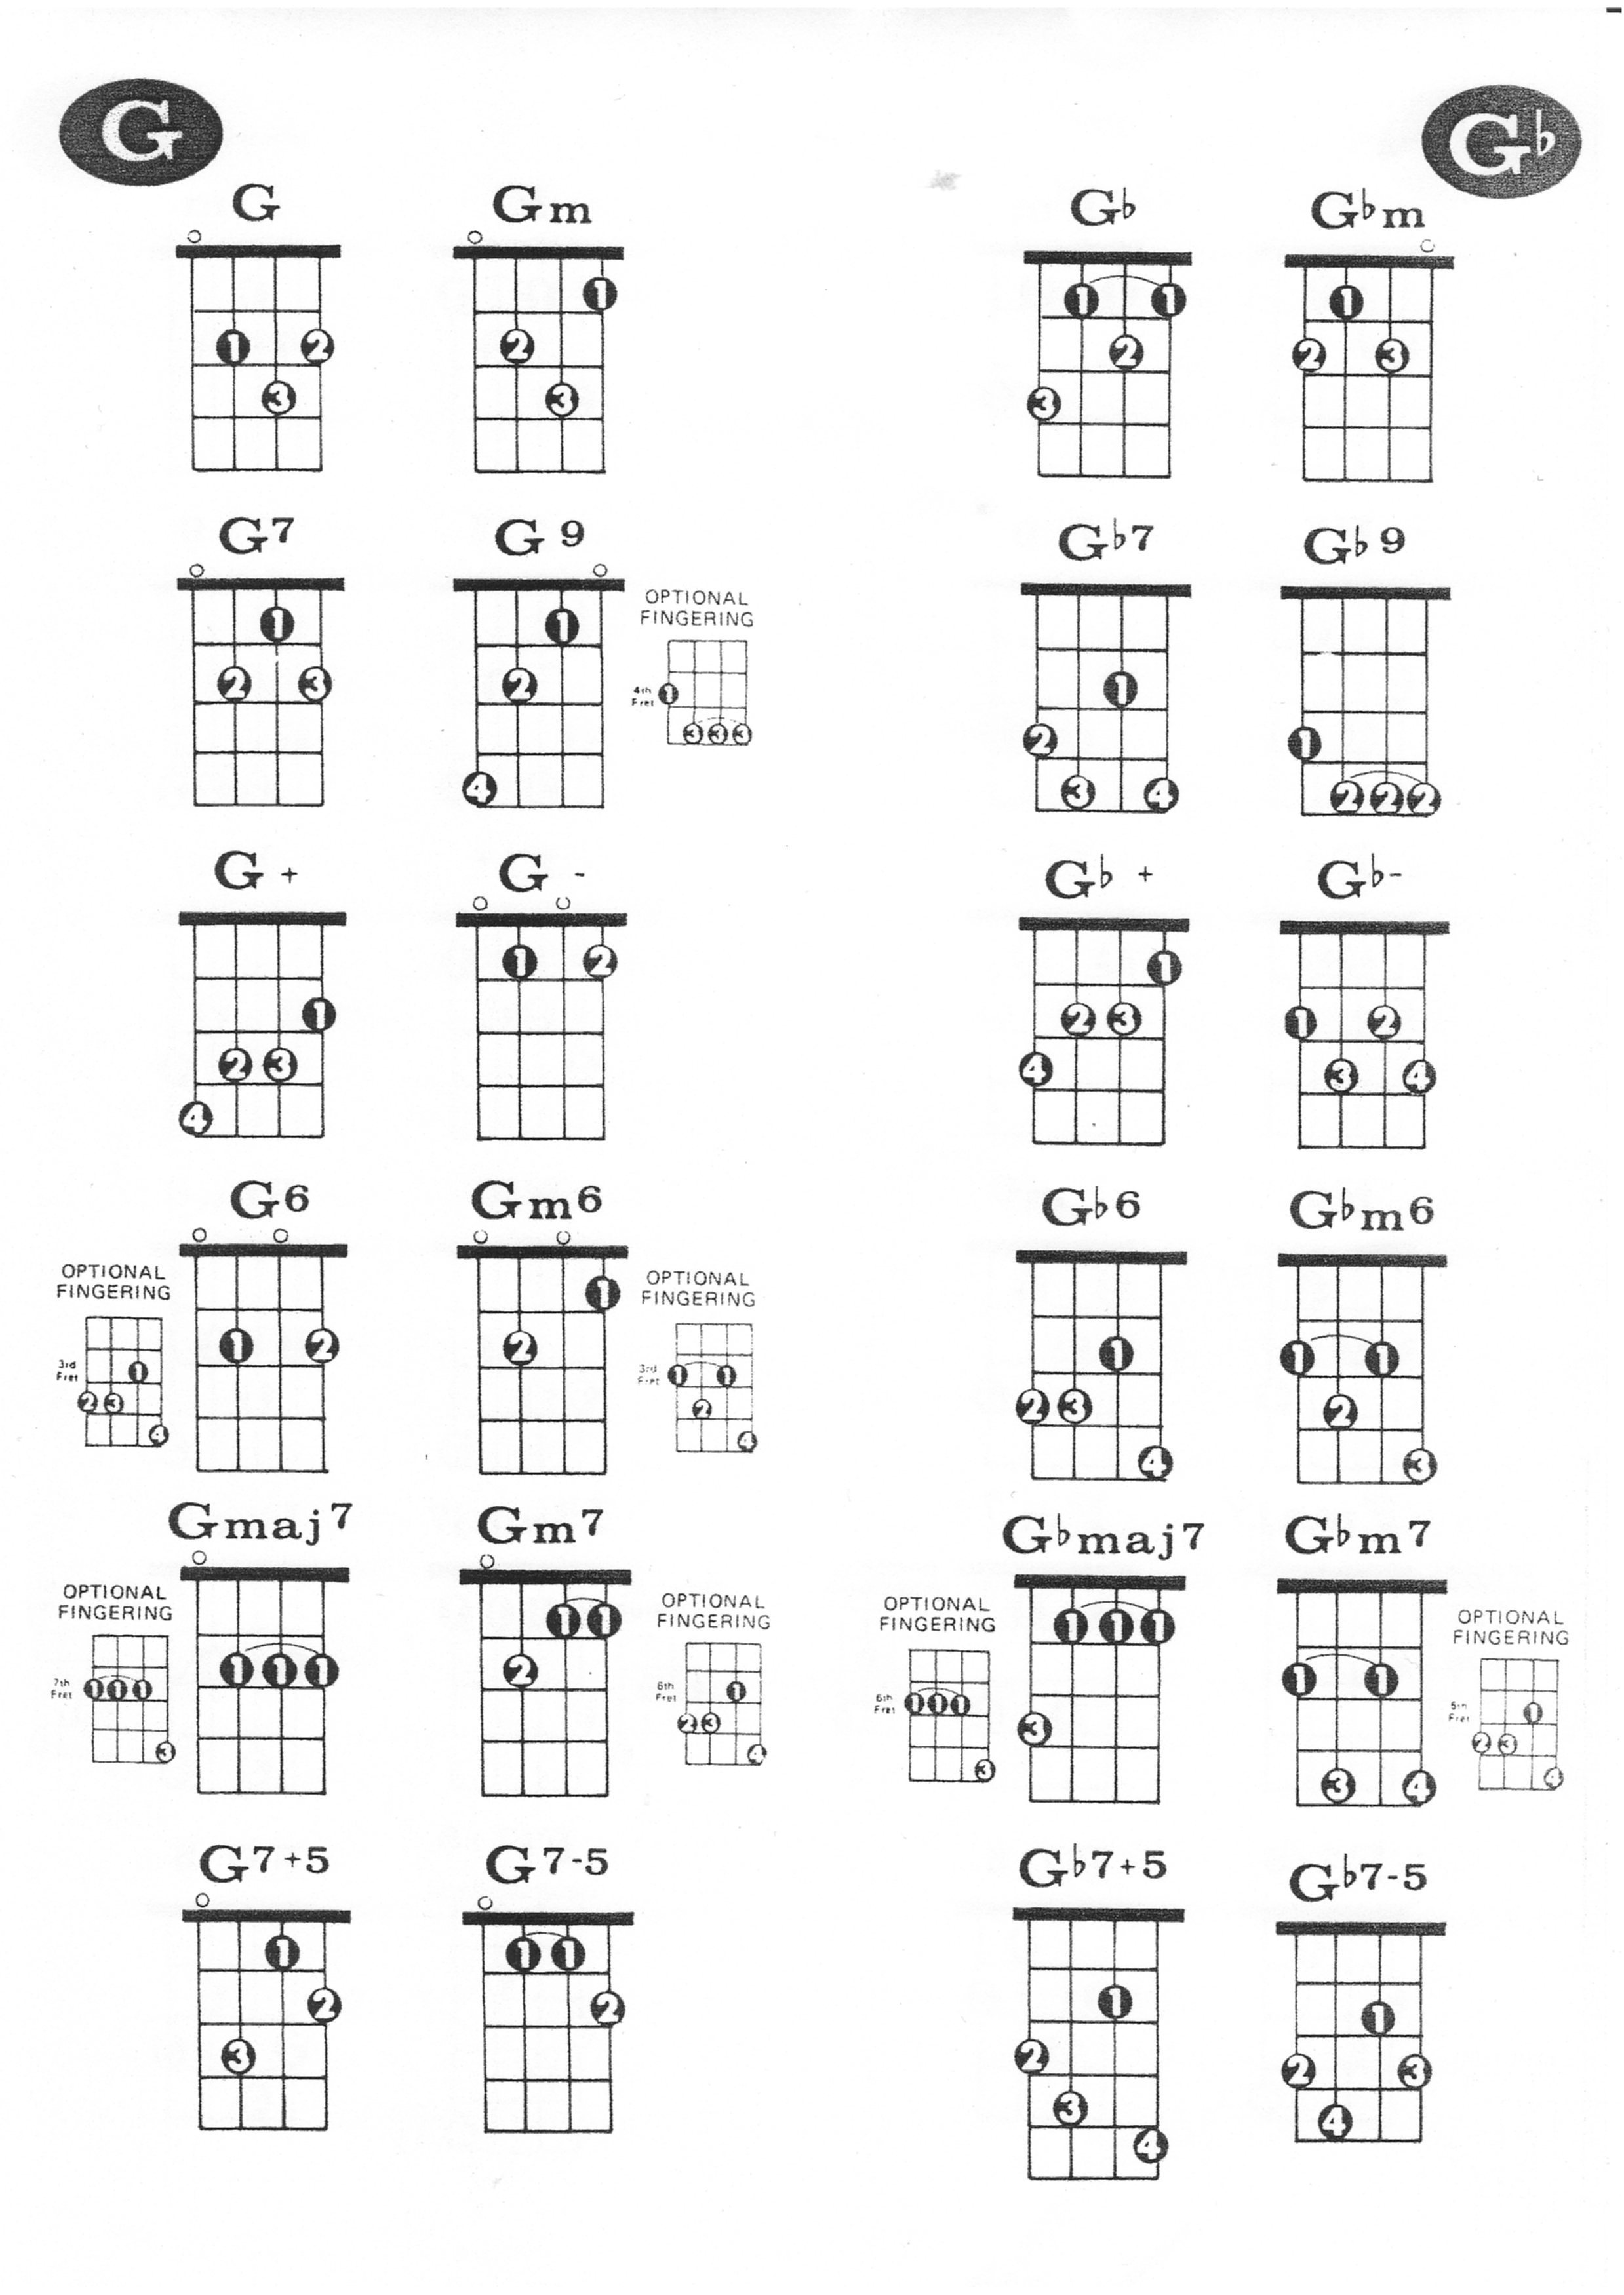 Ukelele chords hornsbybugs g and g flat chords hexwebz Gallery